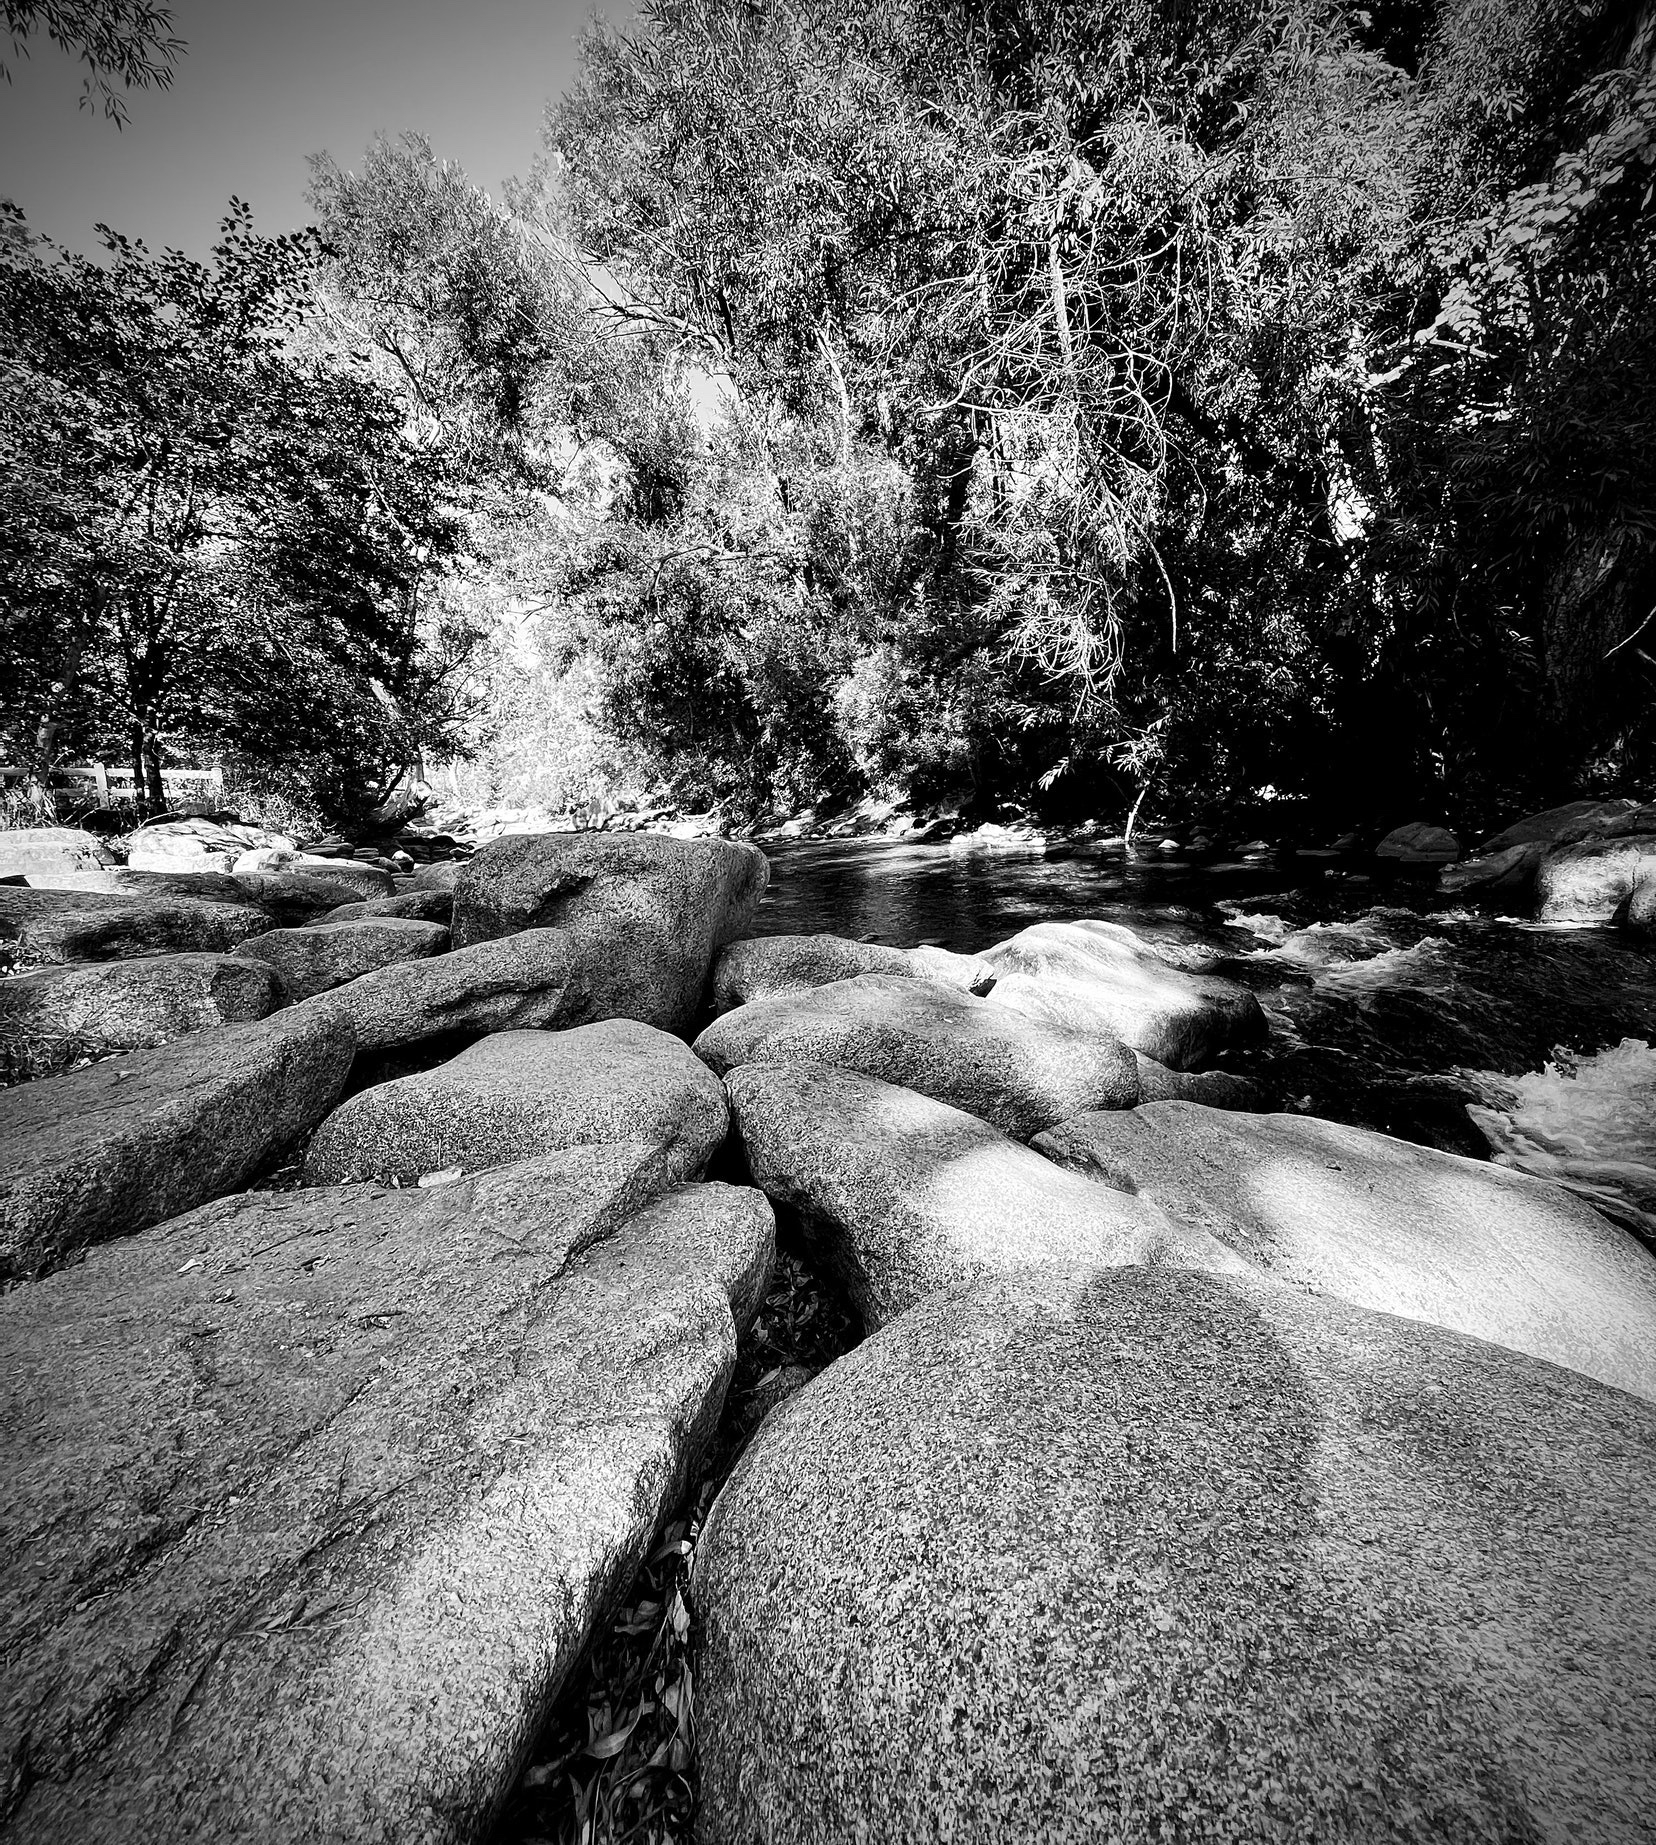 Stones by a creek. Black and White.